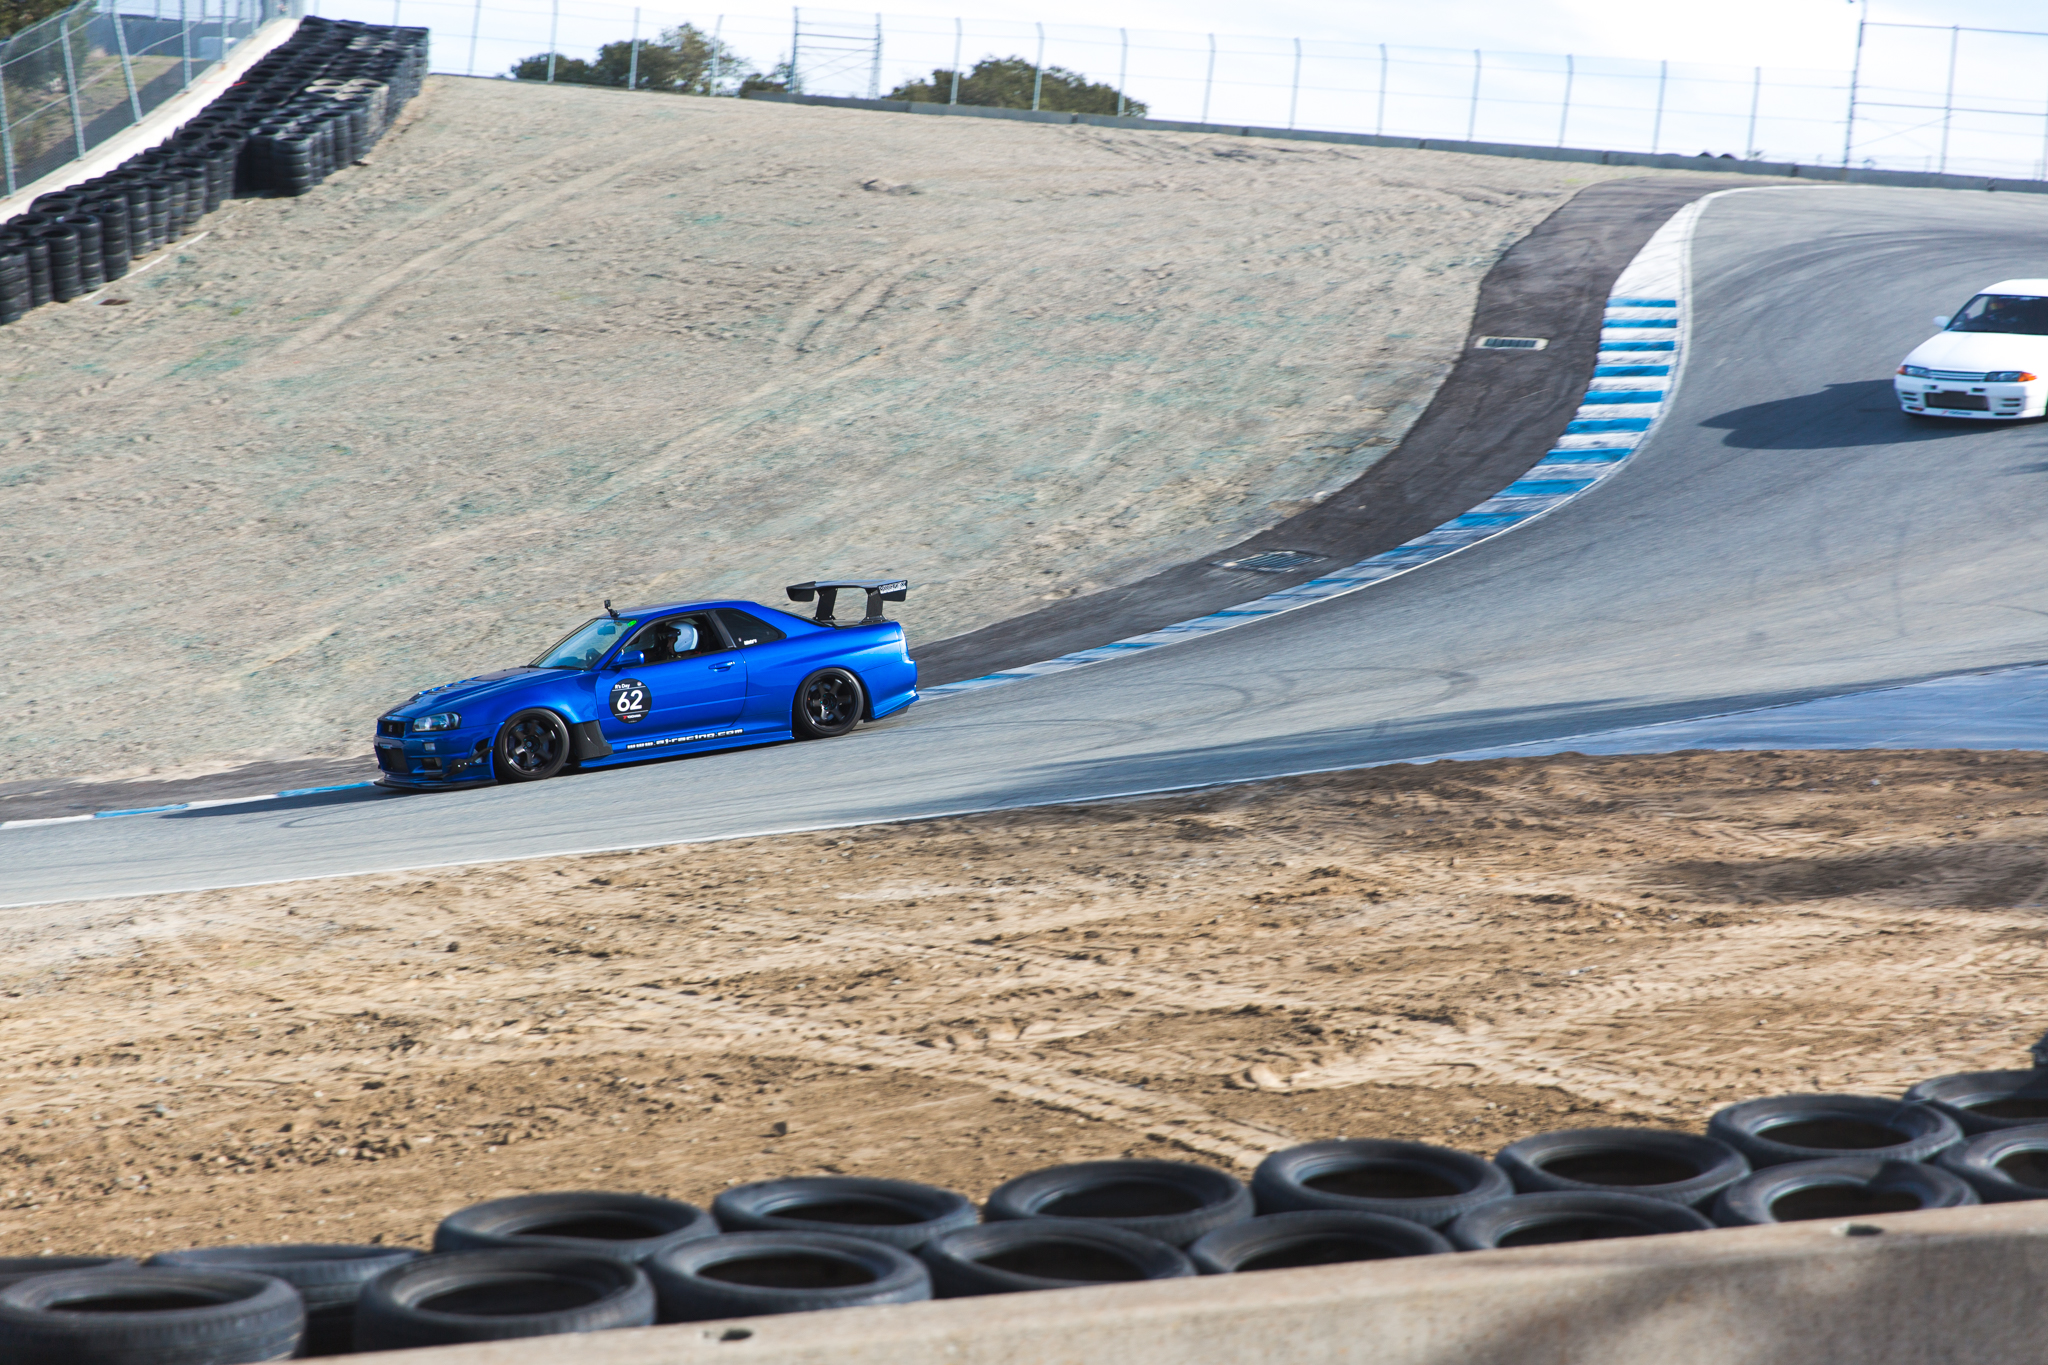 Stay_Driven_Rs_Day-52.jpg